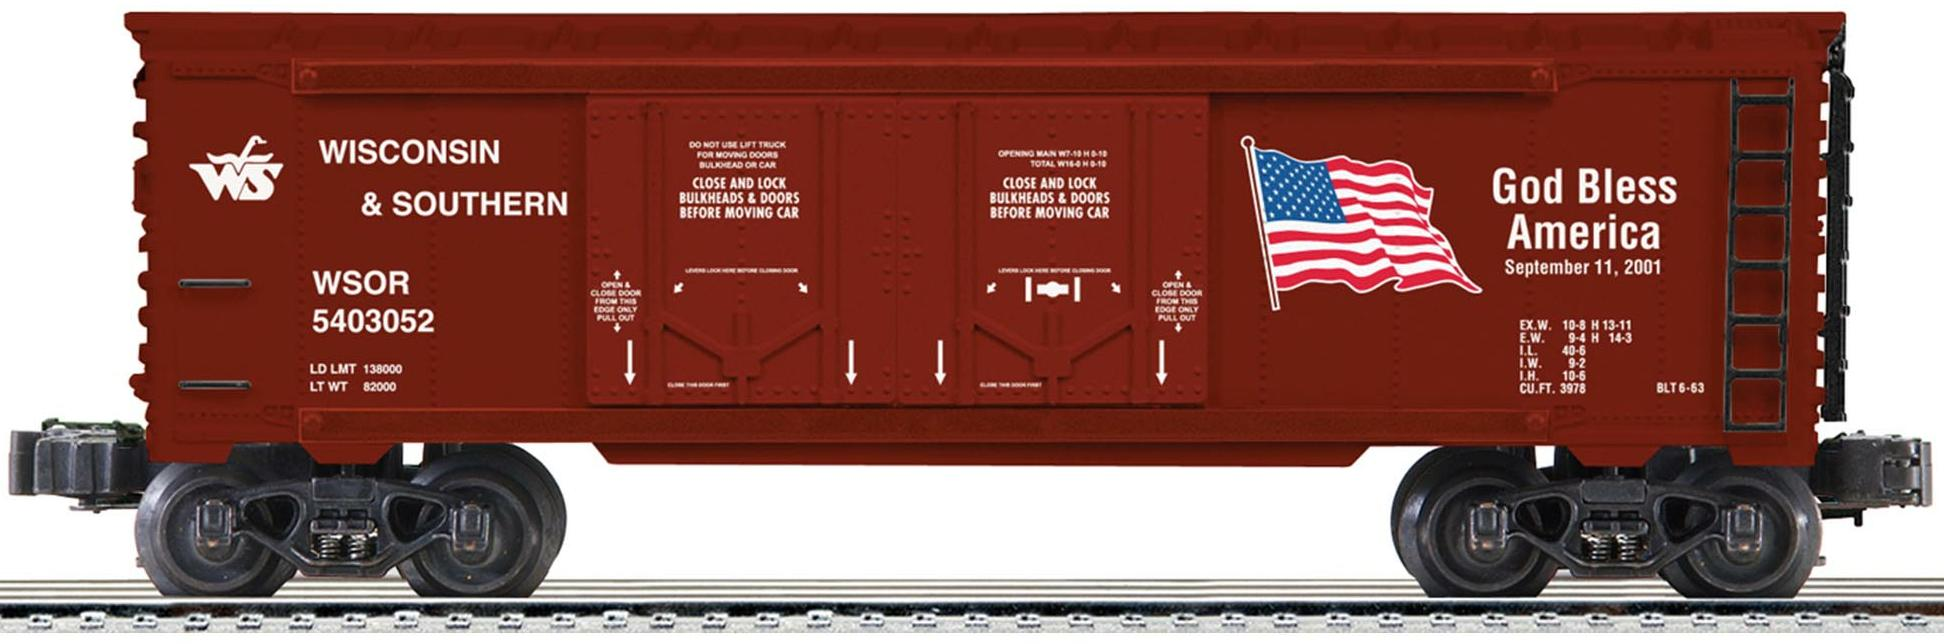 Wisconsin & Southern God Bless America Double Door Boxcar image